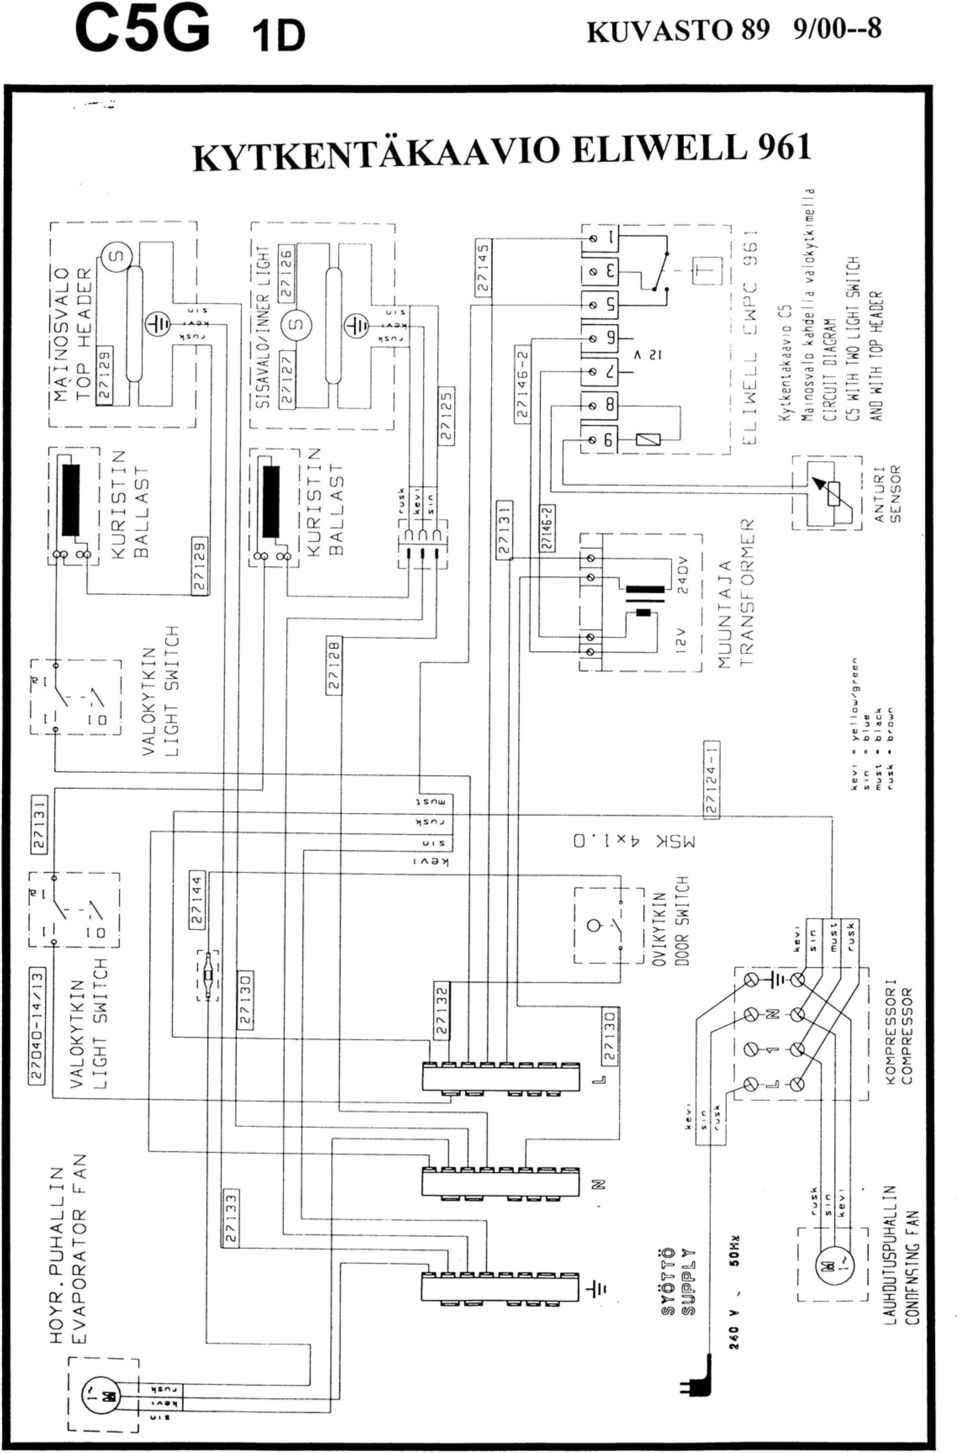 whirlpool oven wiring diagram for rbs305pdb16 bmw 3 series